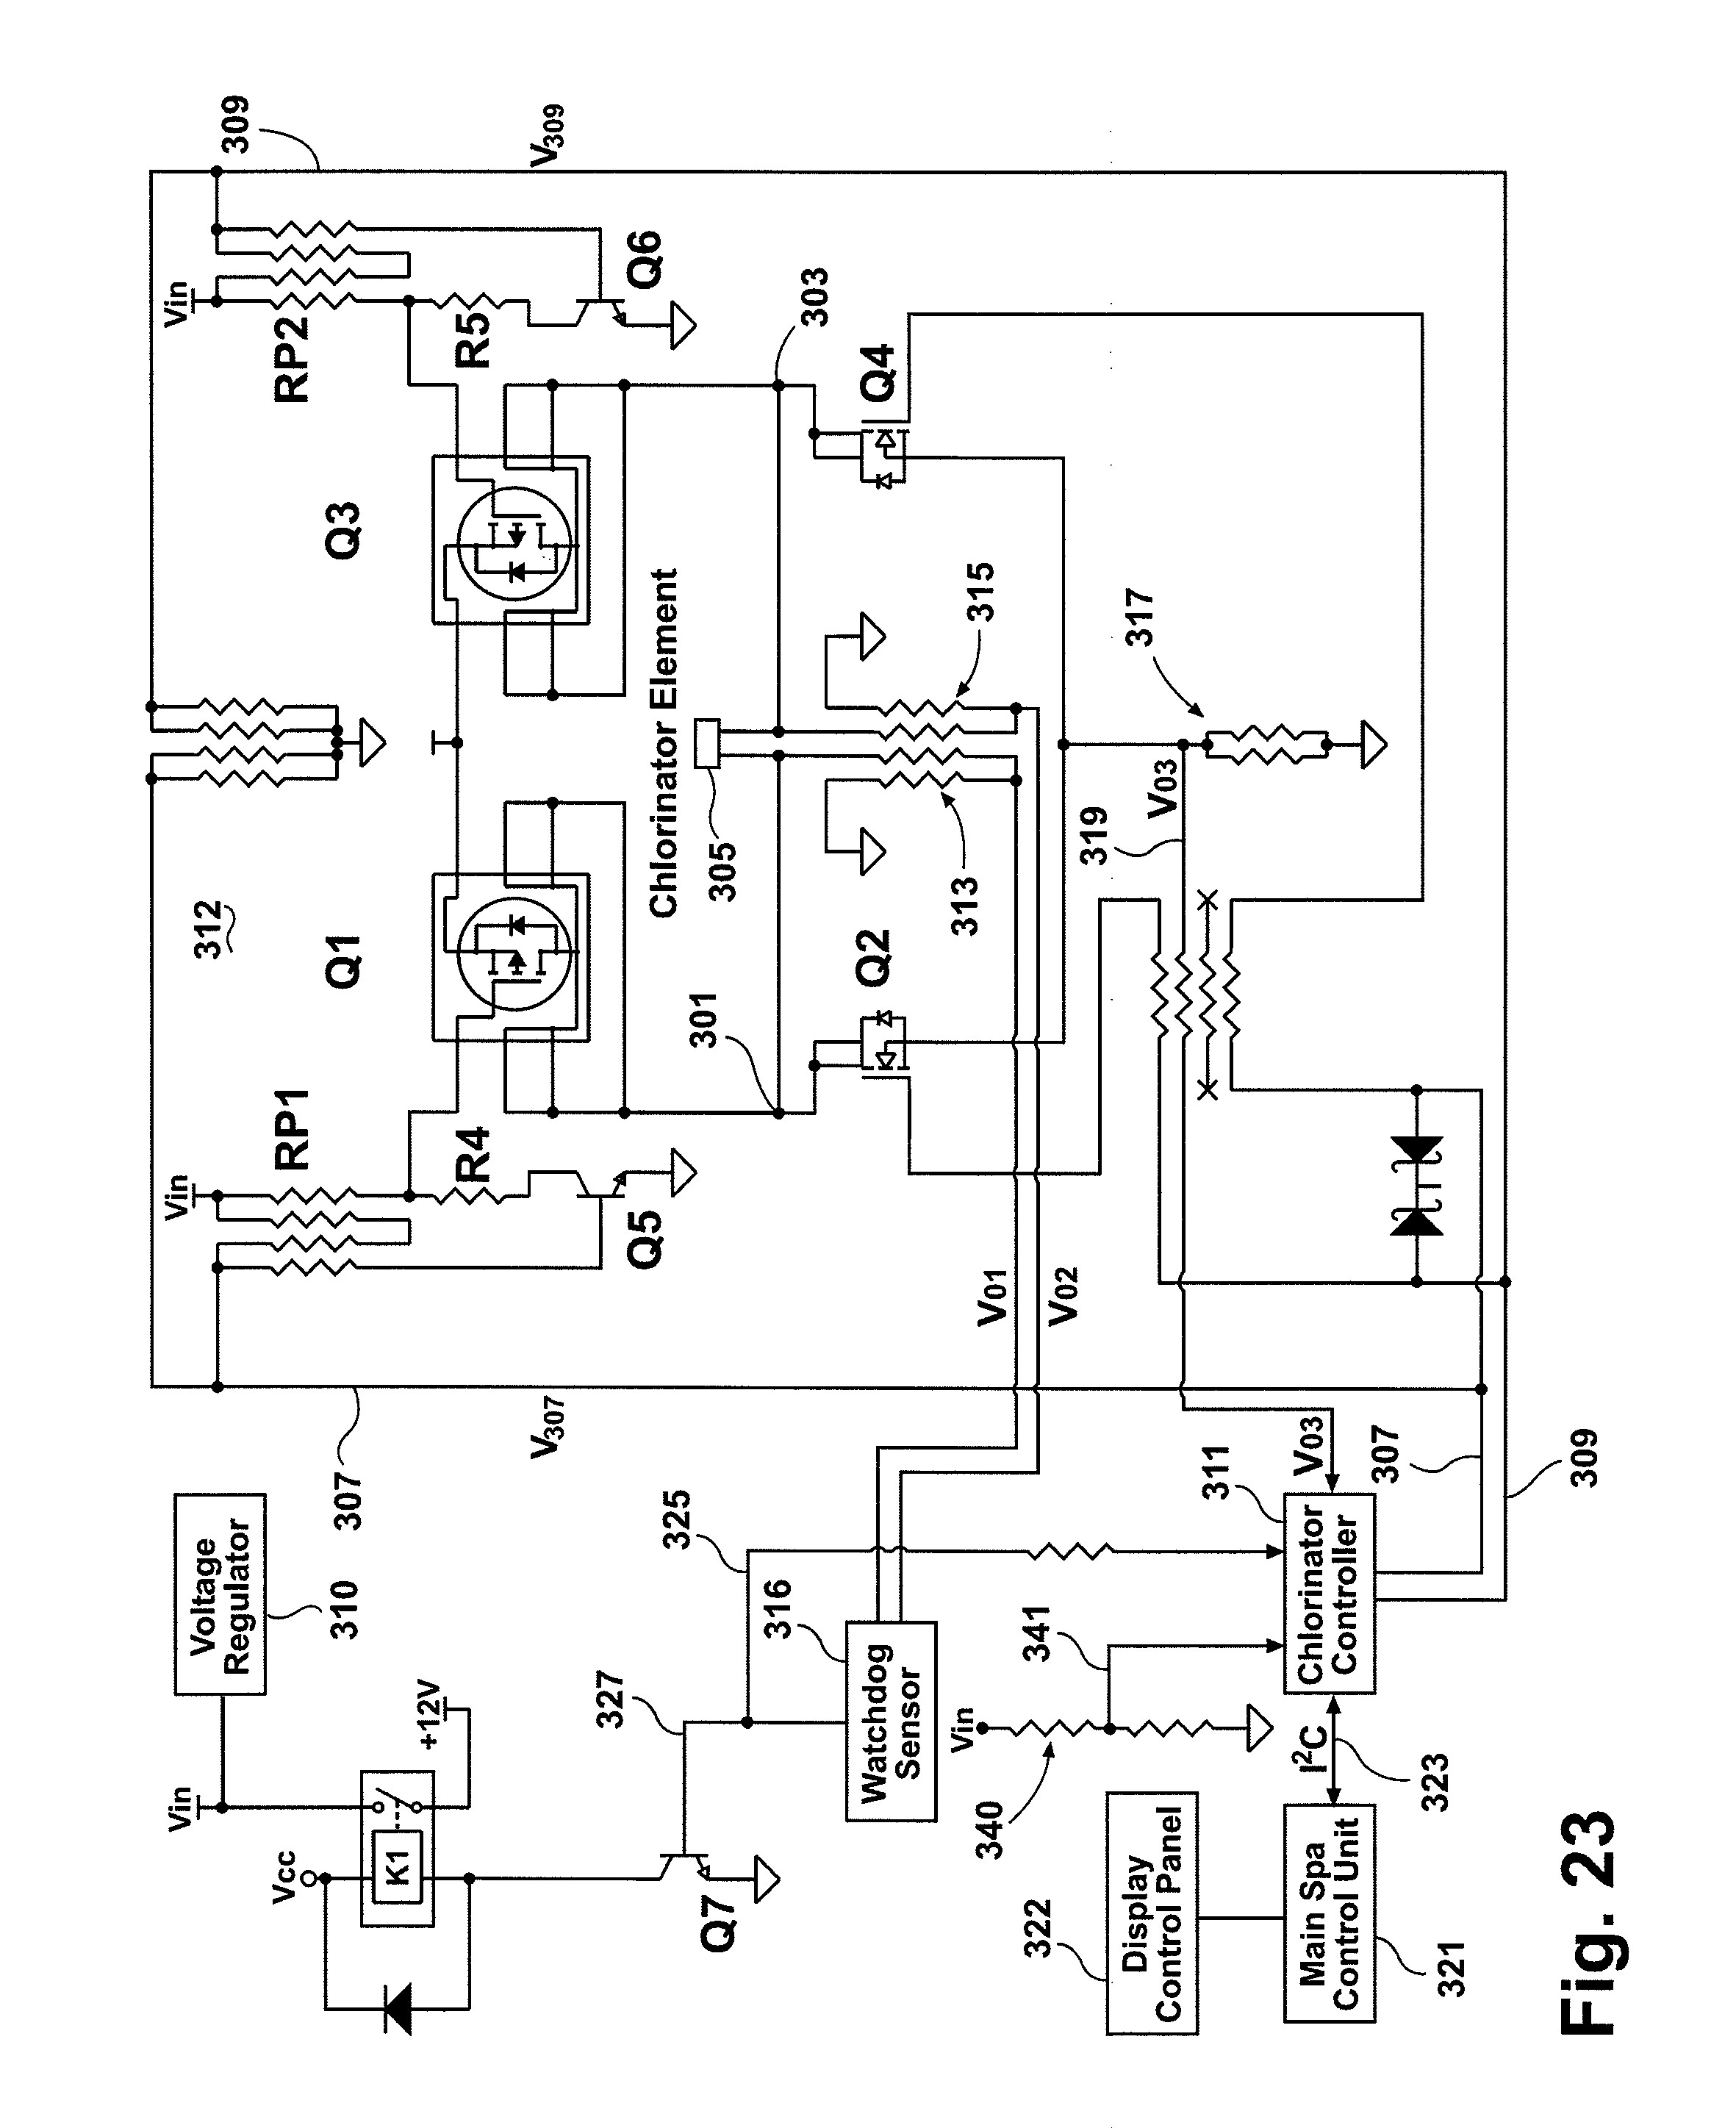 220v Hot Tub Wiring Diagram Collection